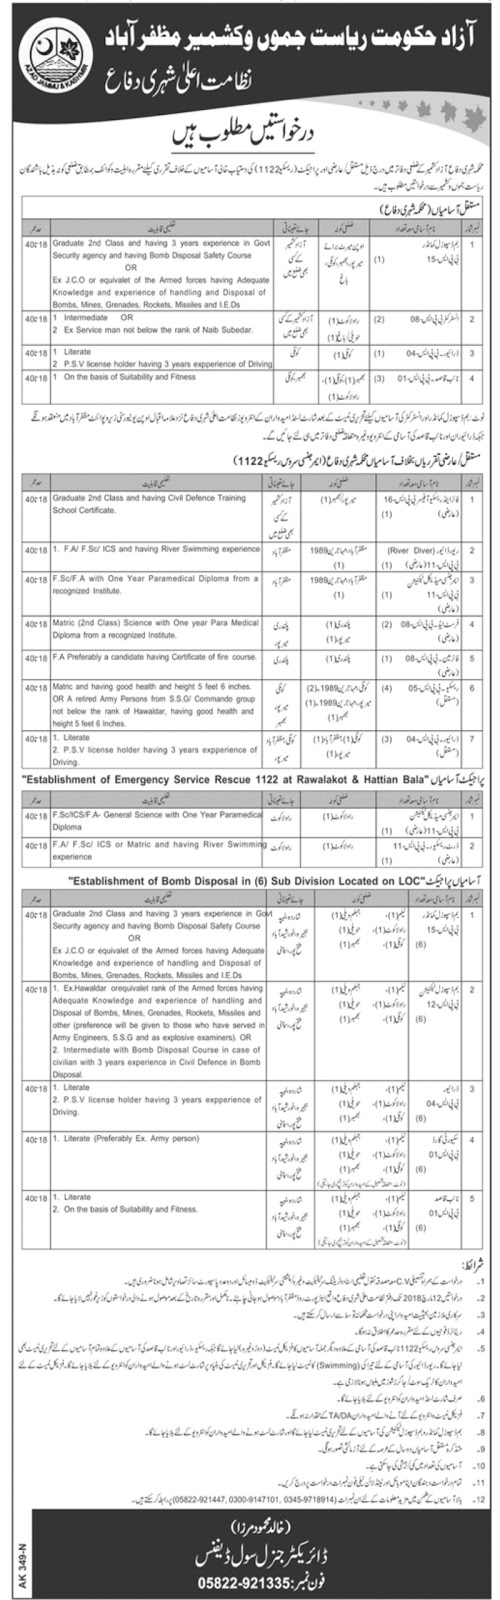 AJK Rescue 1122 New Jobs in Emergency Services Rescue,Civil Defence Department Govt of Azad Jammu & Kashmir Latest 2018